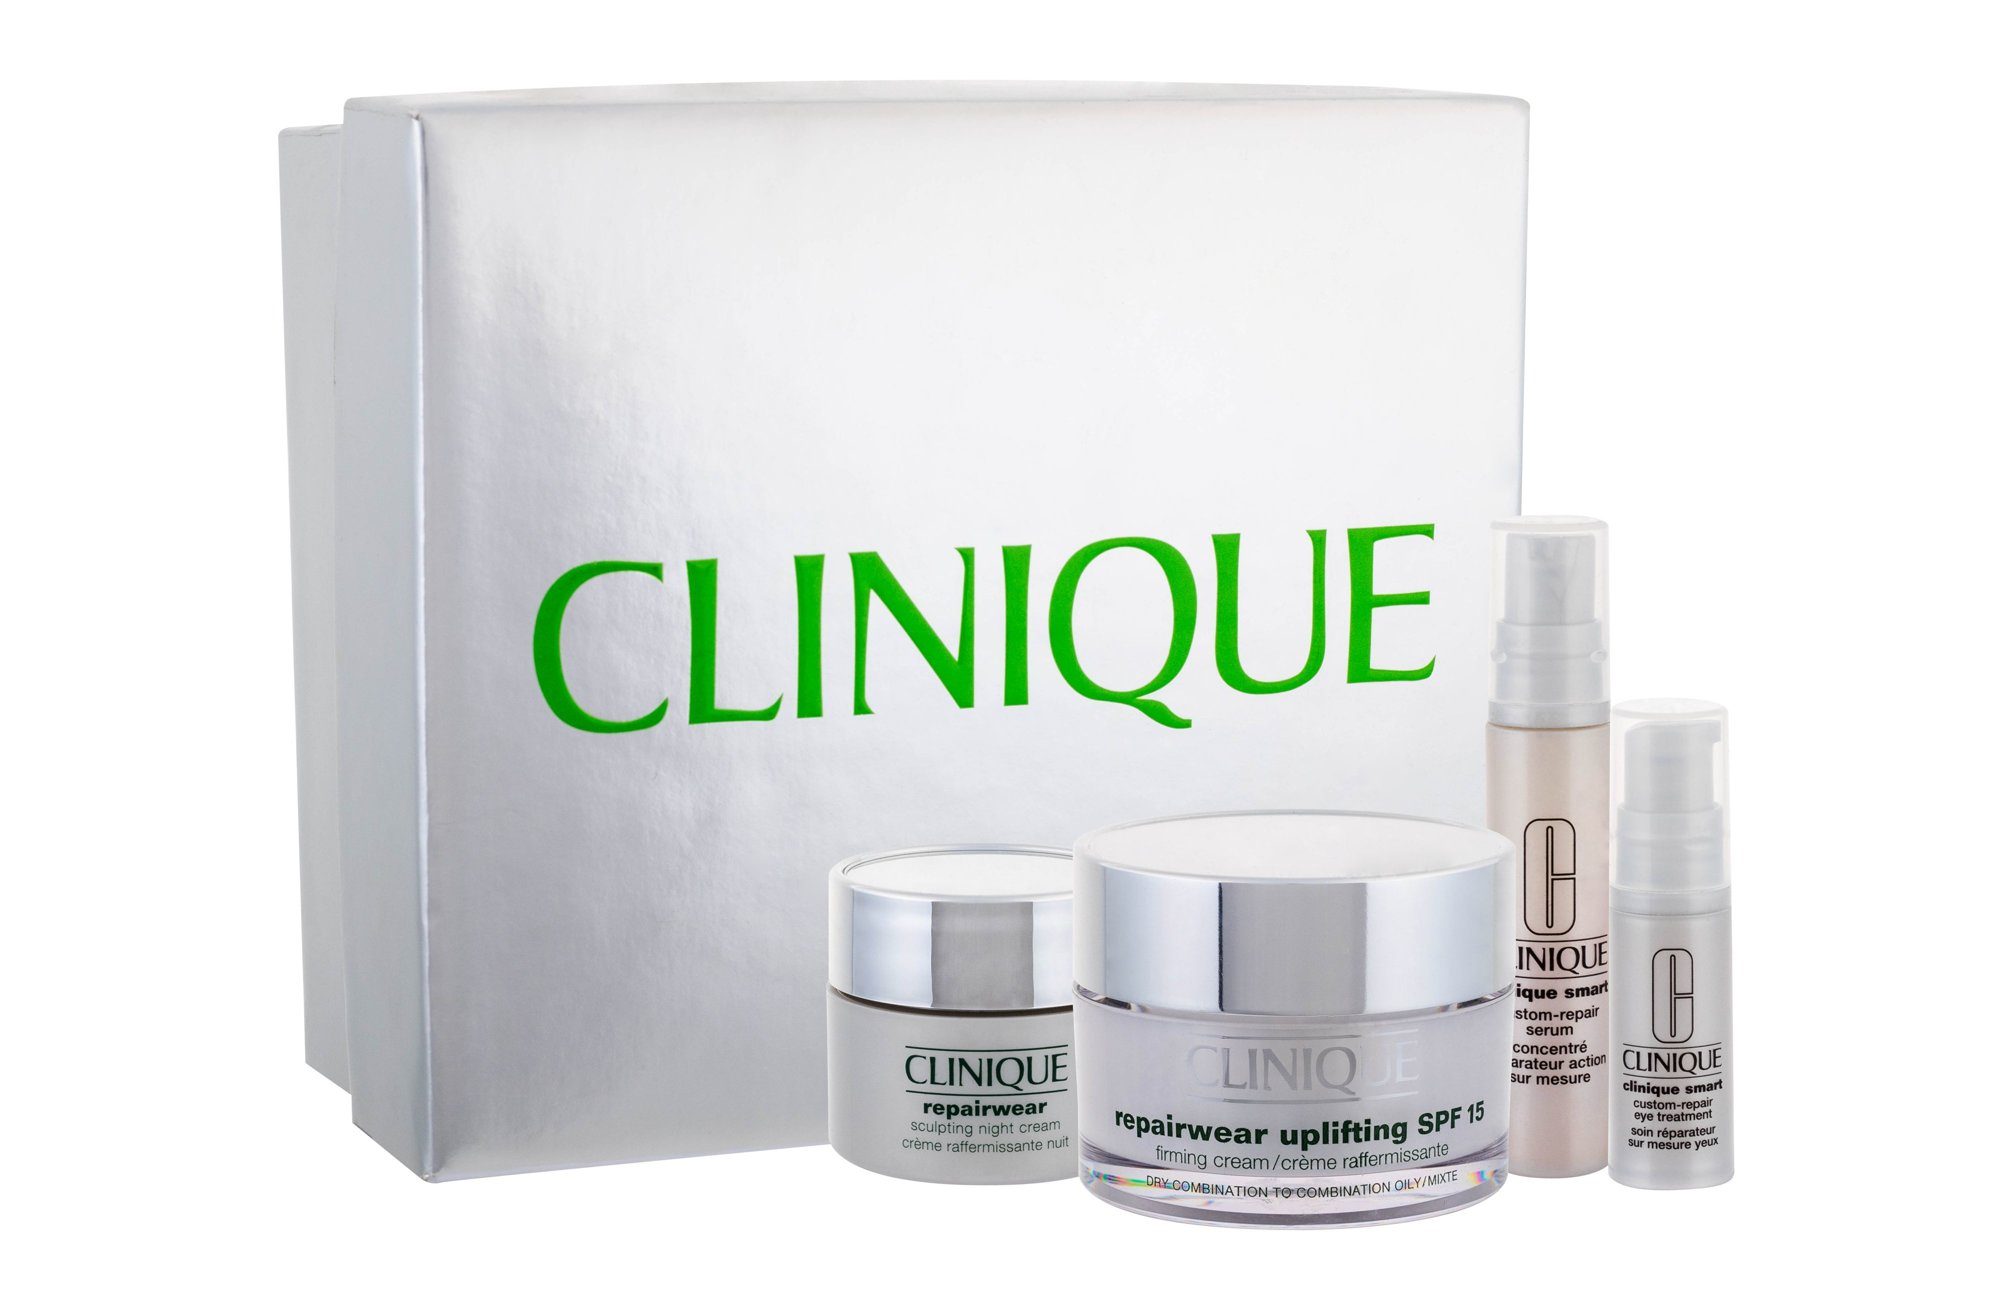 Clinique Repairwear Uplifting Cosmetic 50ml